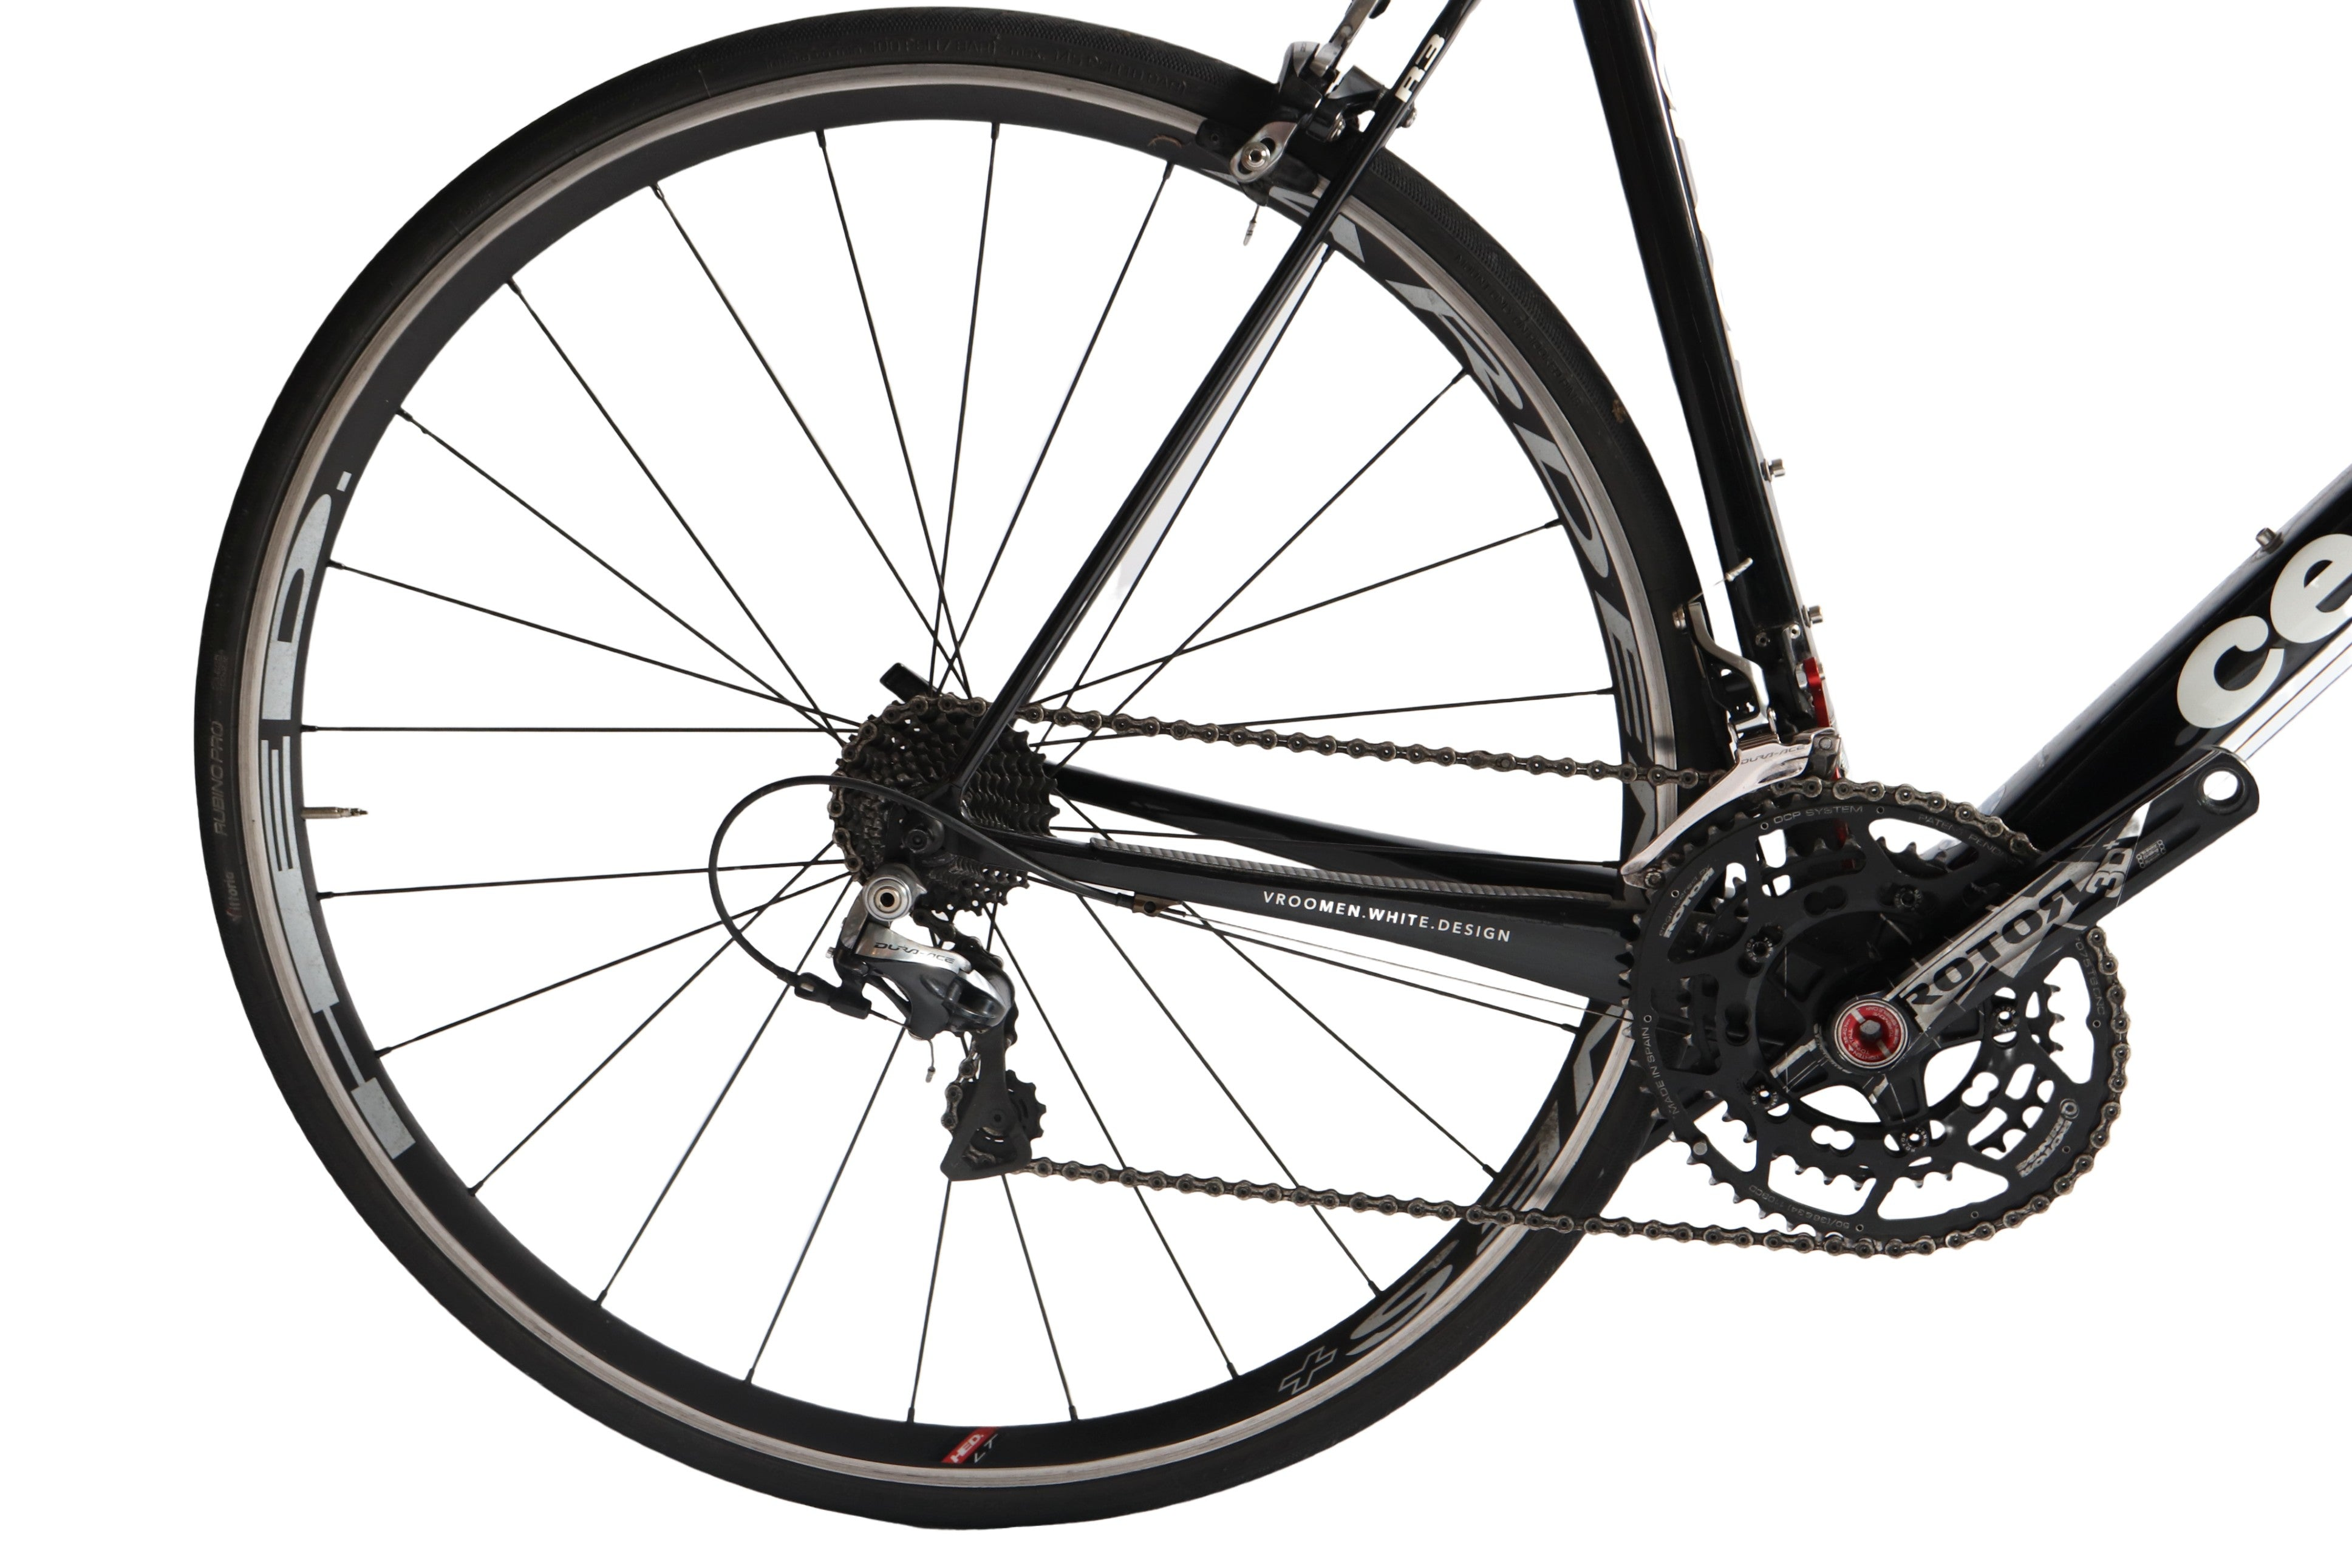 Cycle Exchange | Pre-Owned Performance Bicycles